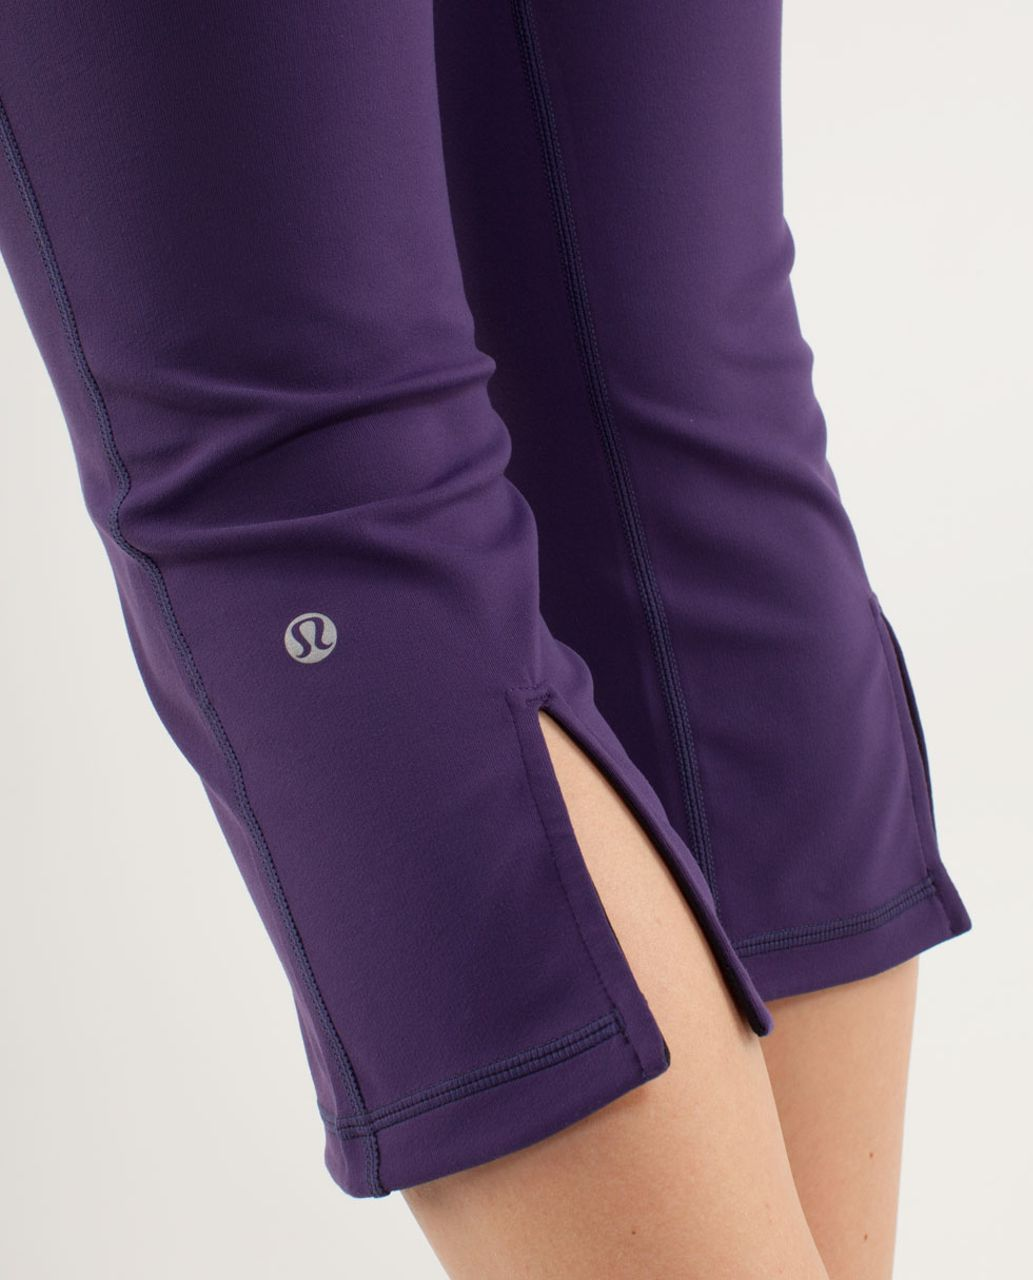 Lululemon Gather & Crow Crop *Reversible - Black /  Heathered Concord Grape